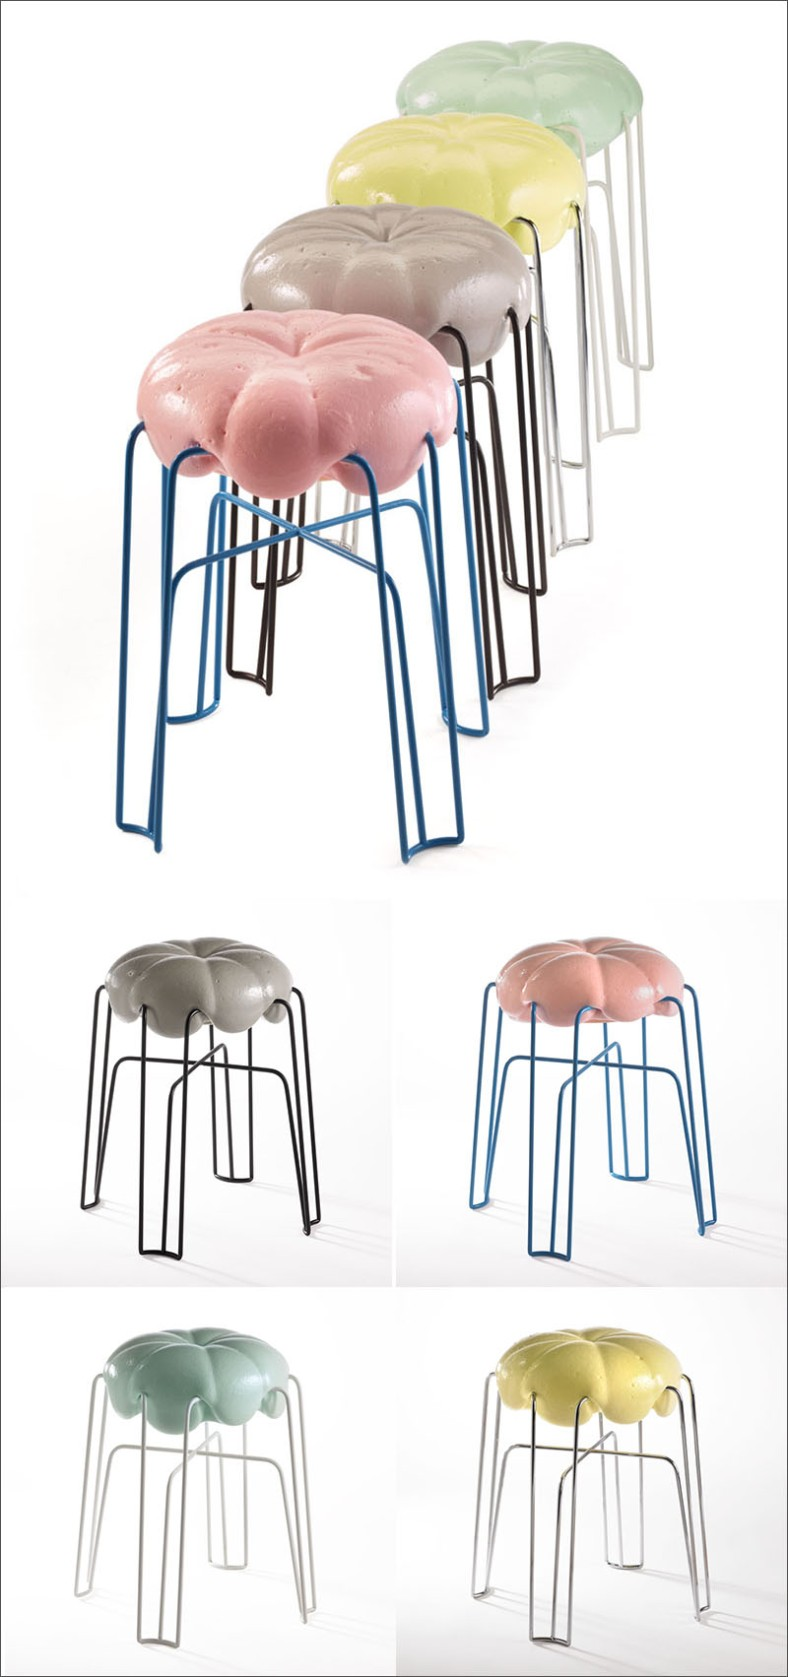 creative-modern-furniture-marshmallow-stool-060217-1211-04